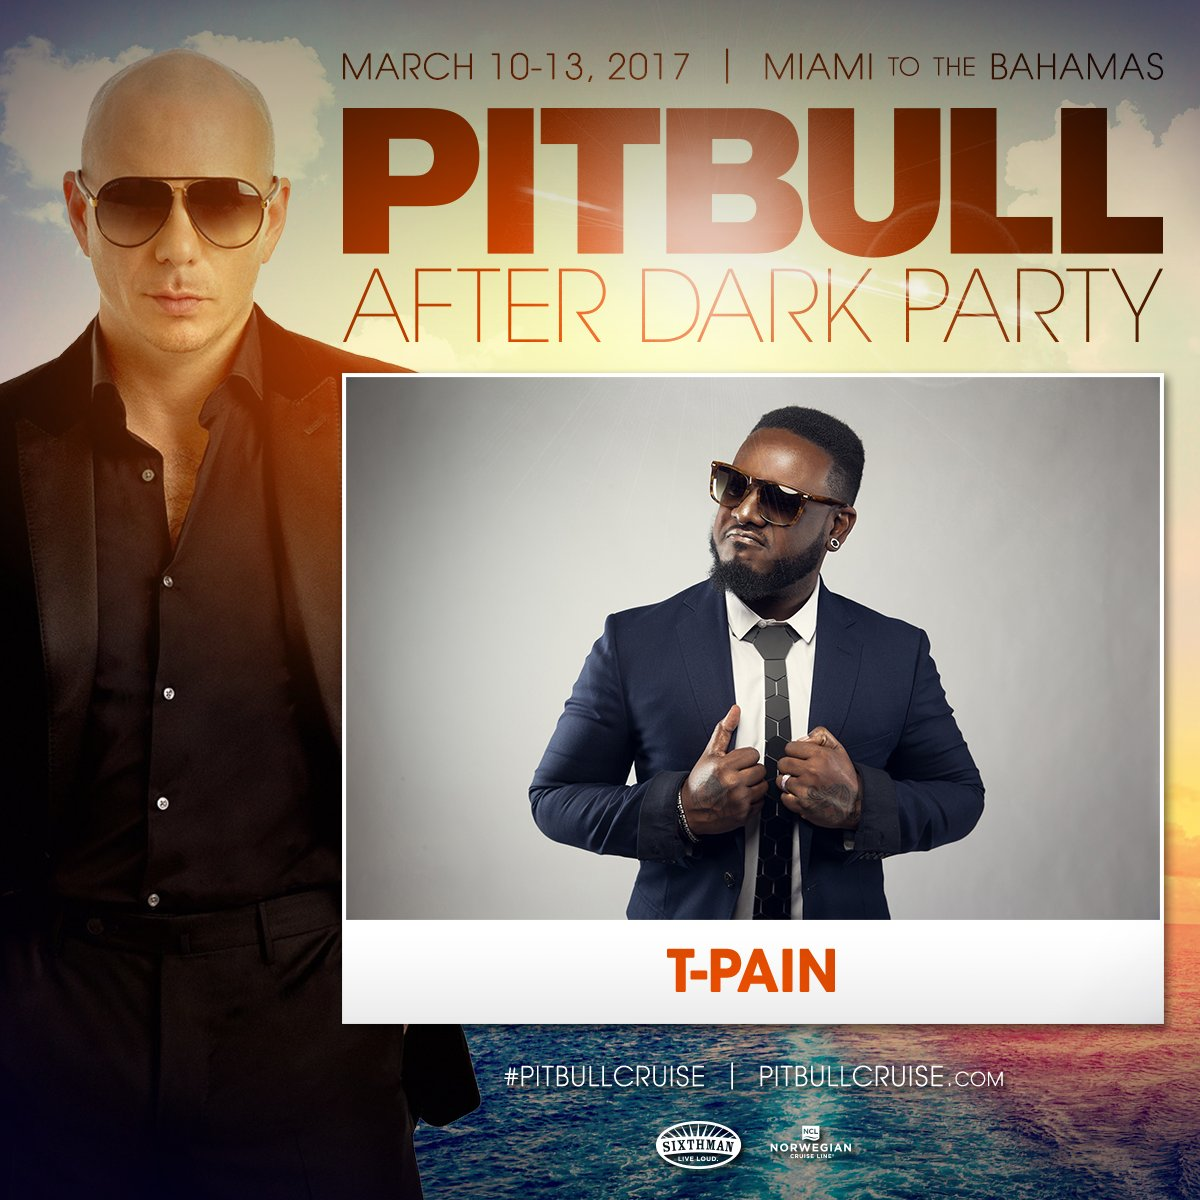 .@tpain is joining the party! #pitbullcruise #dale https://t.co/gC1qYvT7DK https://t.co/17MpKBBYbf